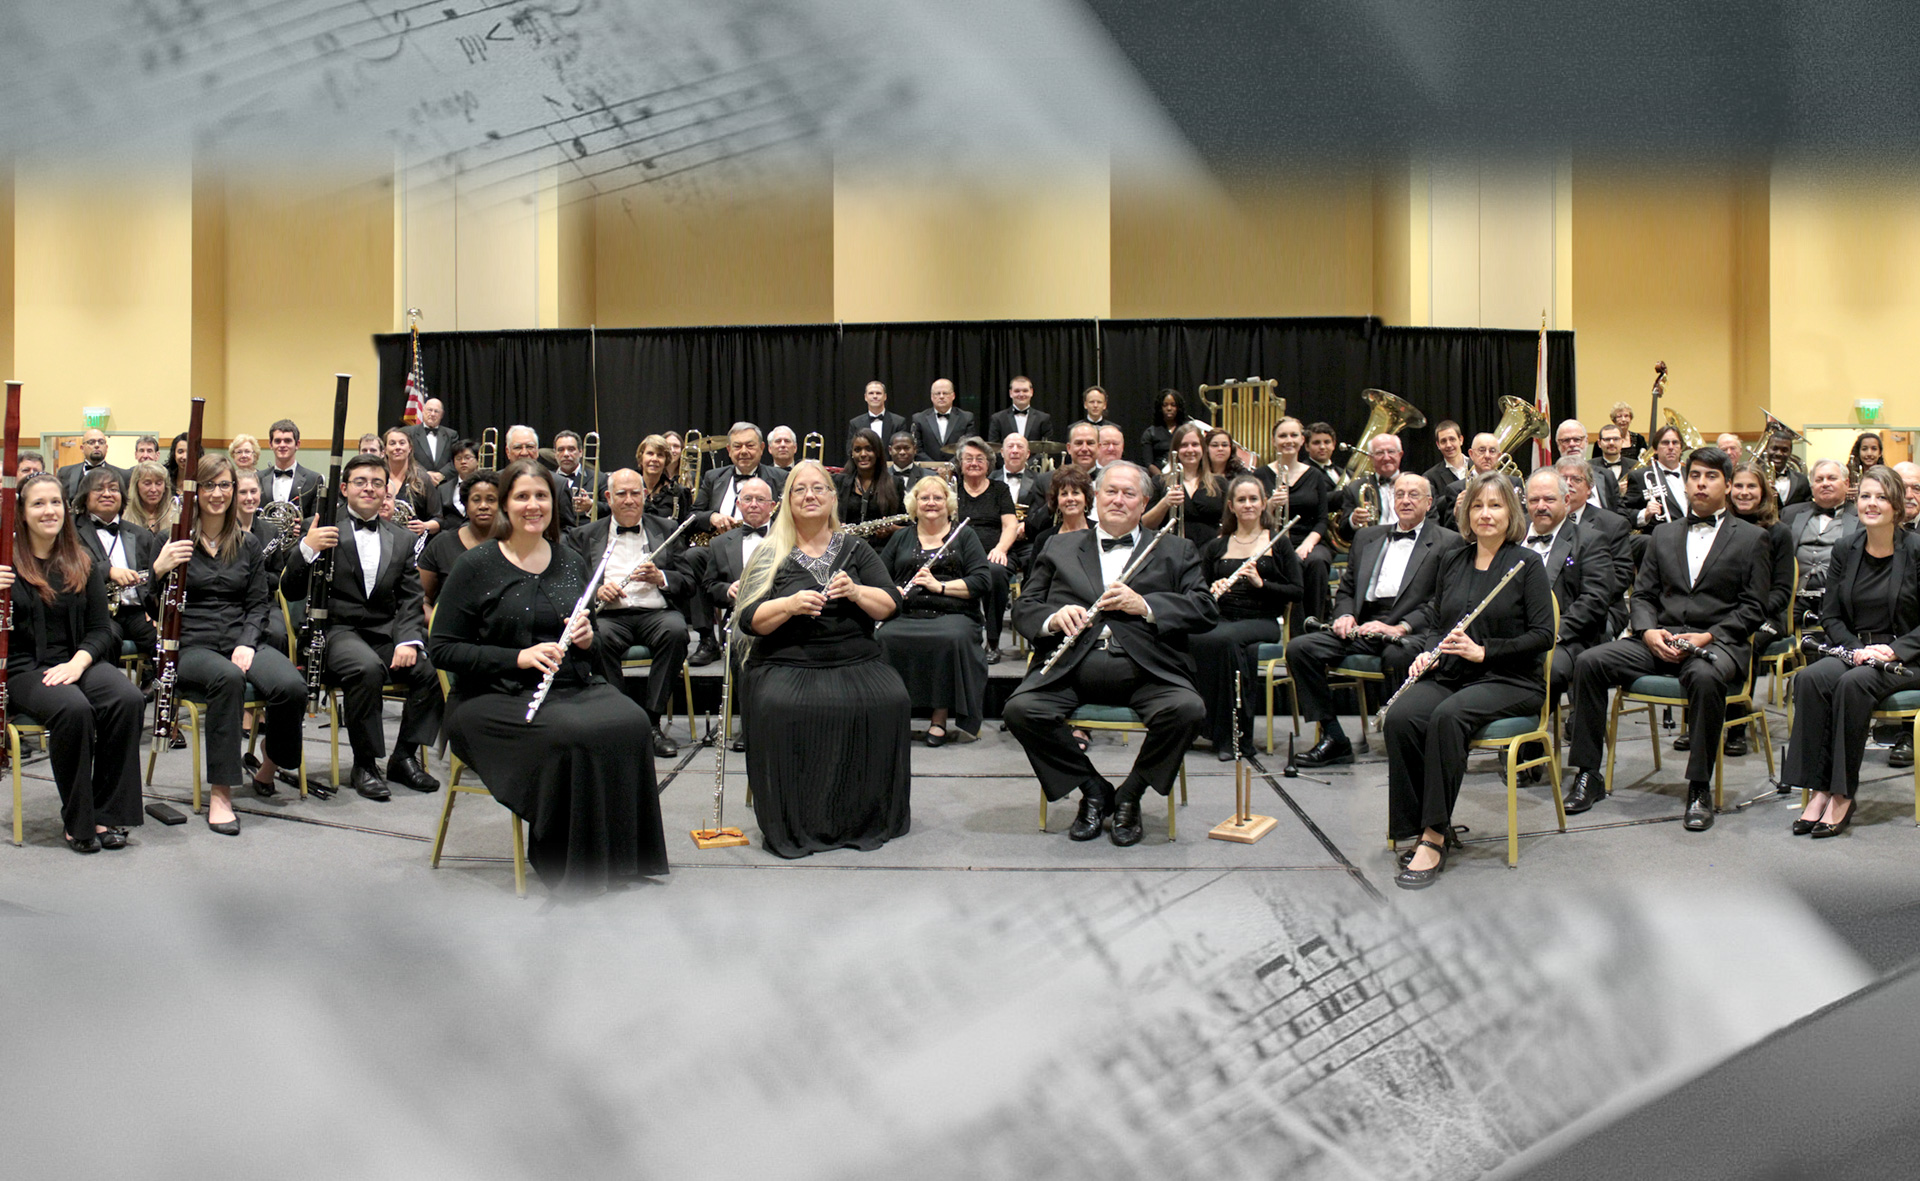 Meet The Port St. Lucie Concert Band